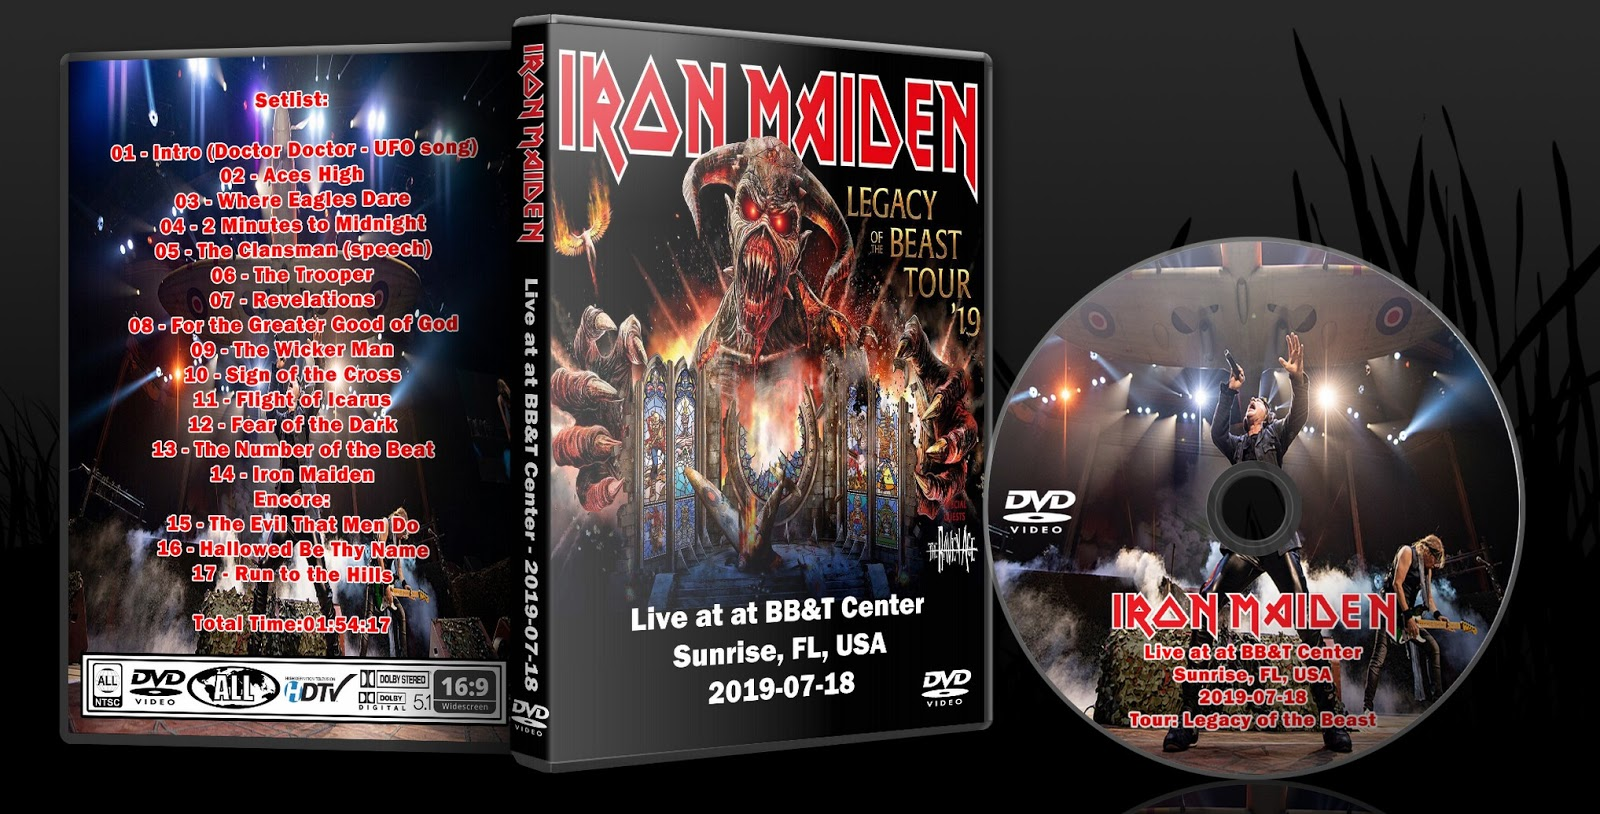 Deer5001RockCocert : Iron Maiden - 2019-07-18 - Live at at